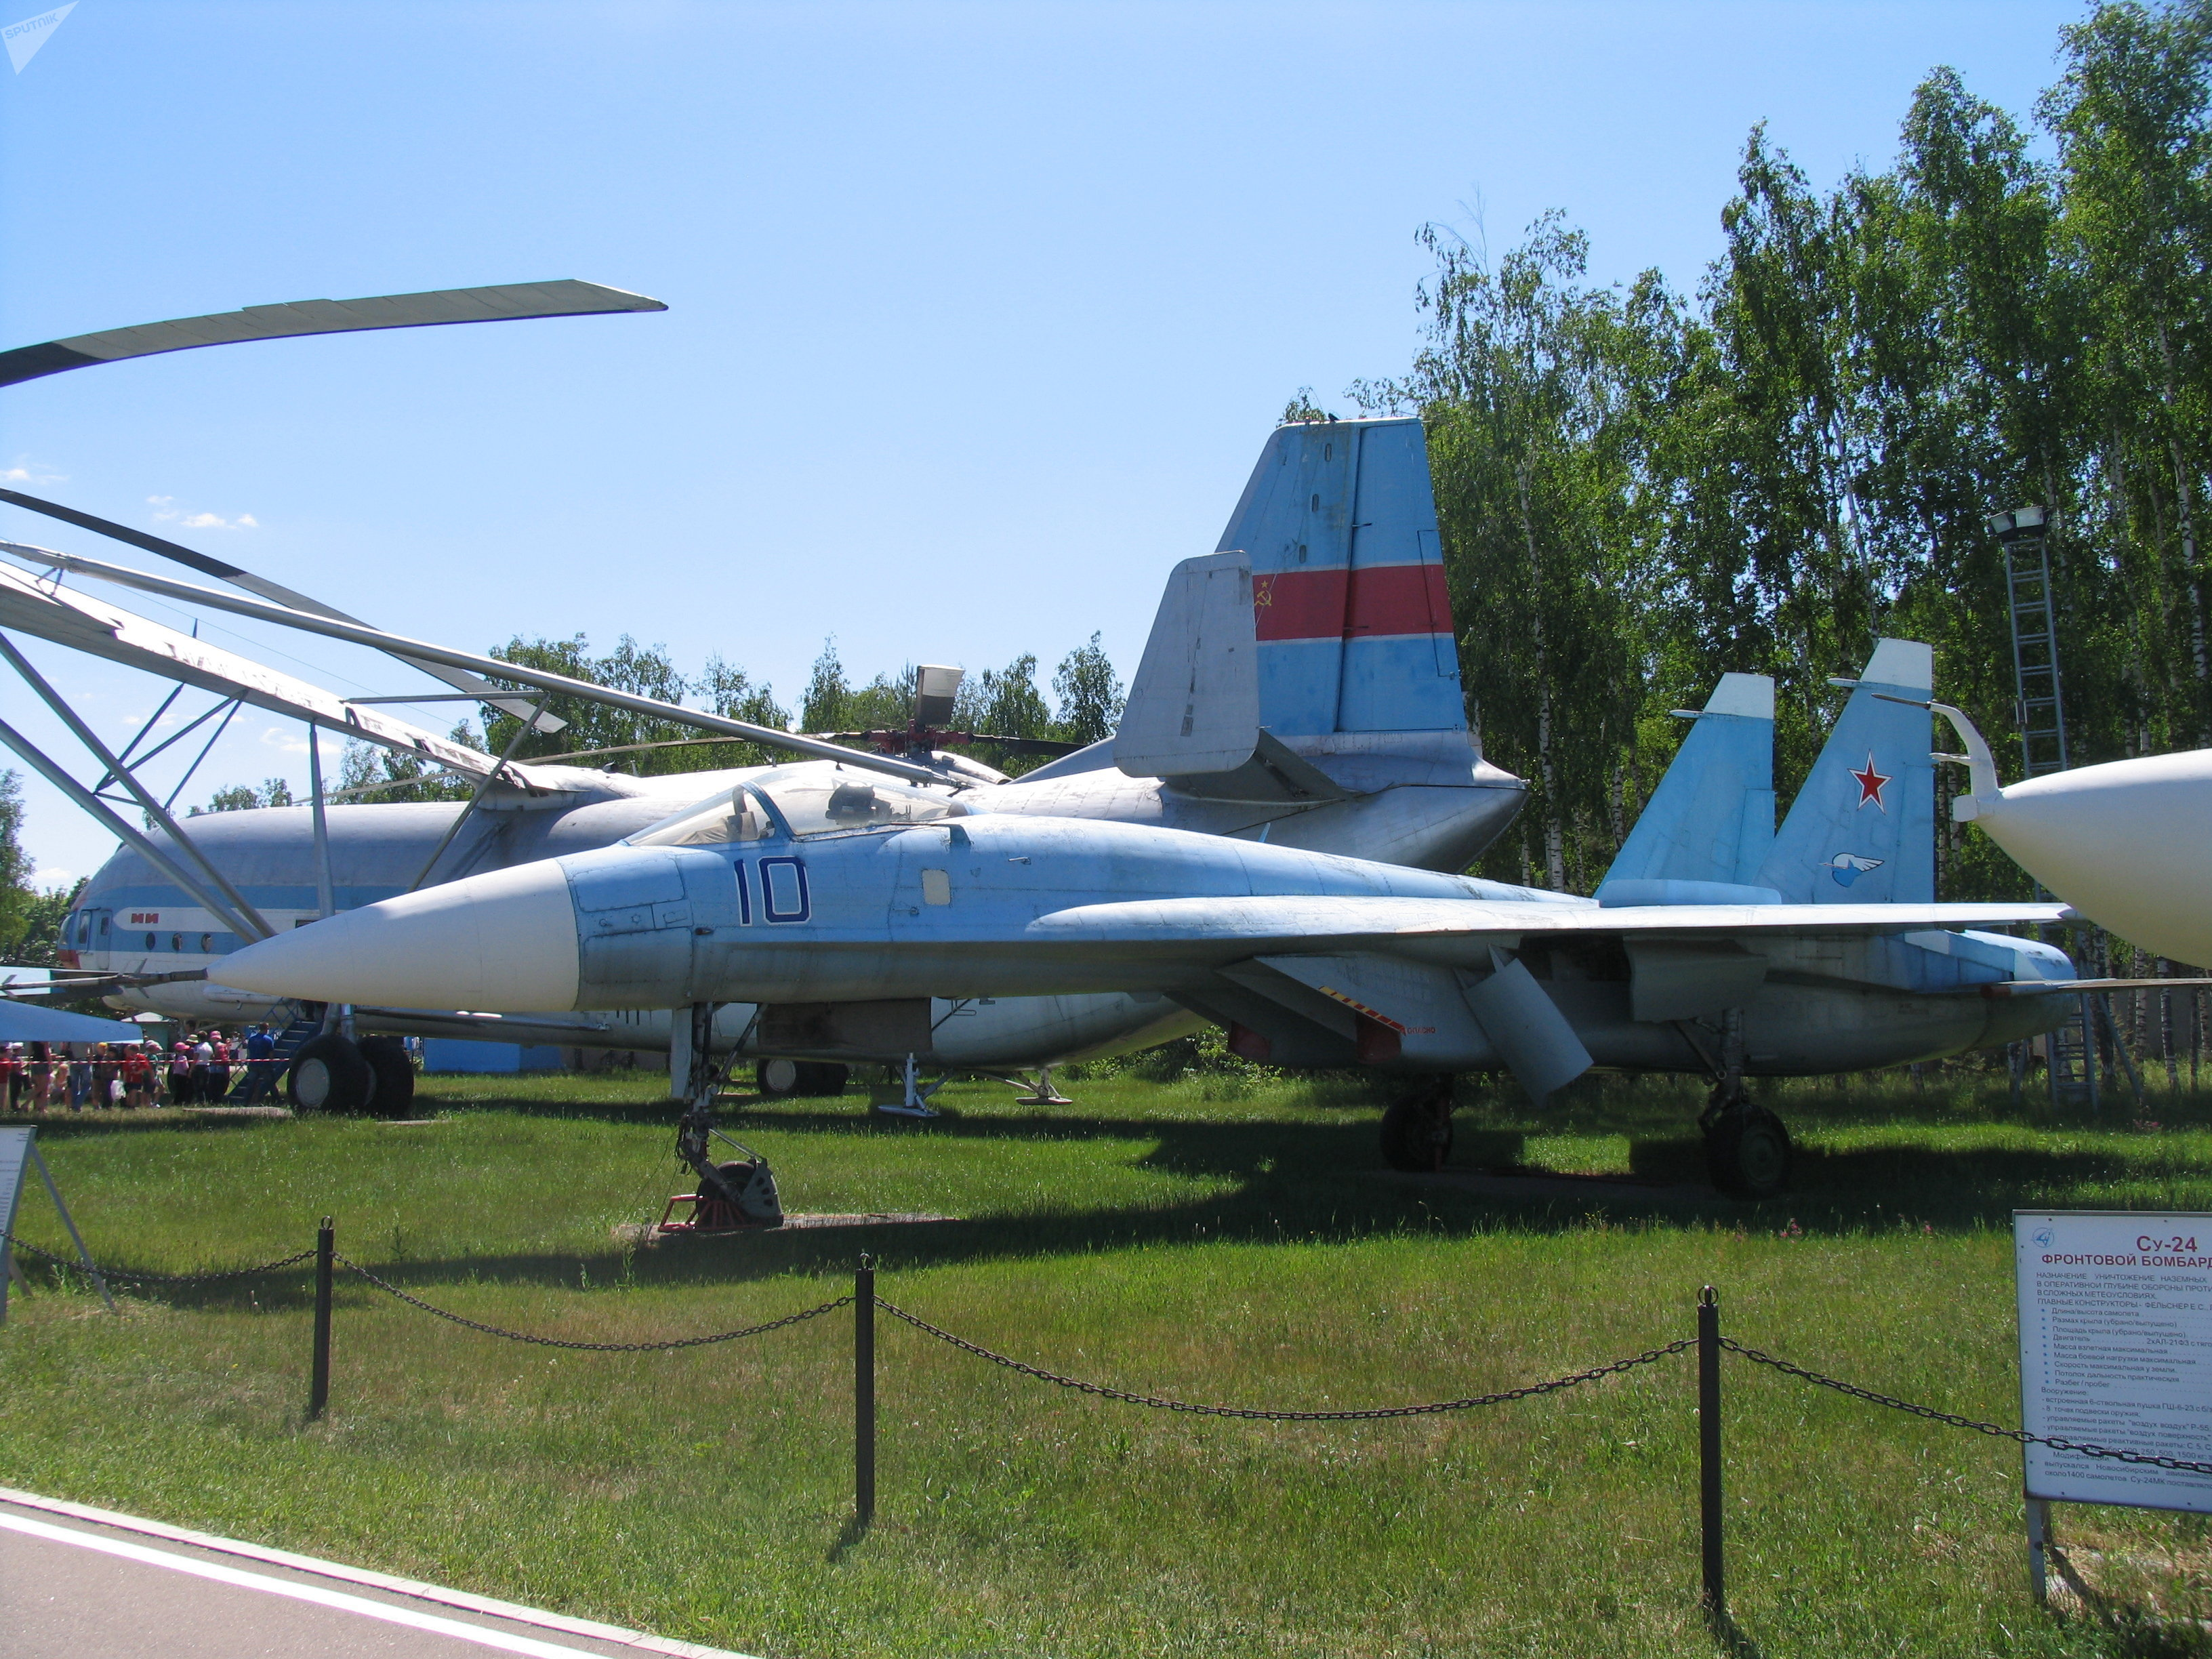 Prototype of the Su-27, factory code T-10, on display in the Central Air Force Museum at Monino Airfield, 40 km east of Moscow.